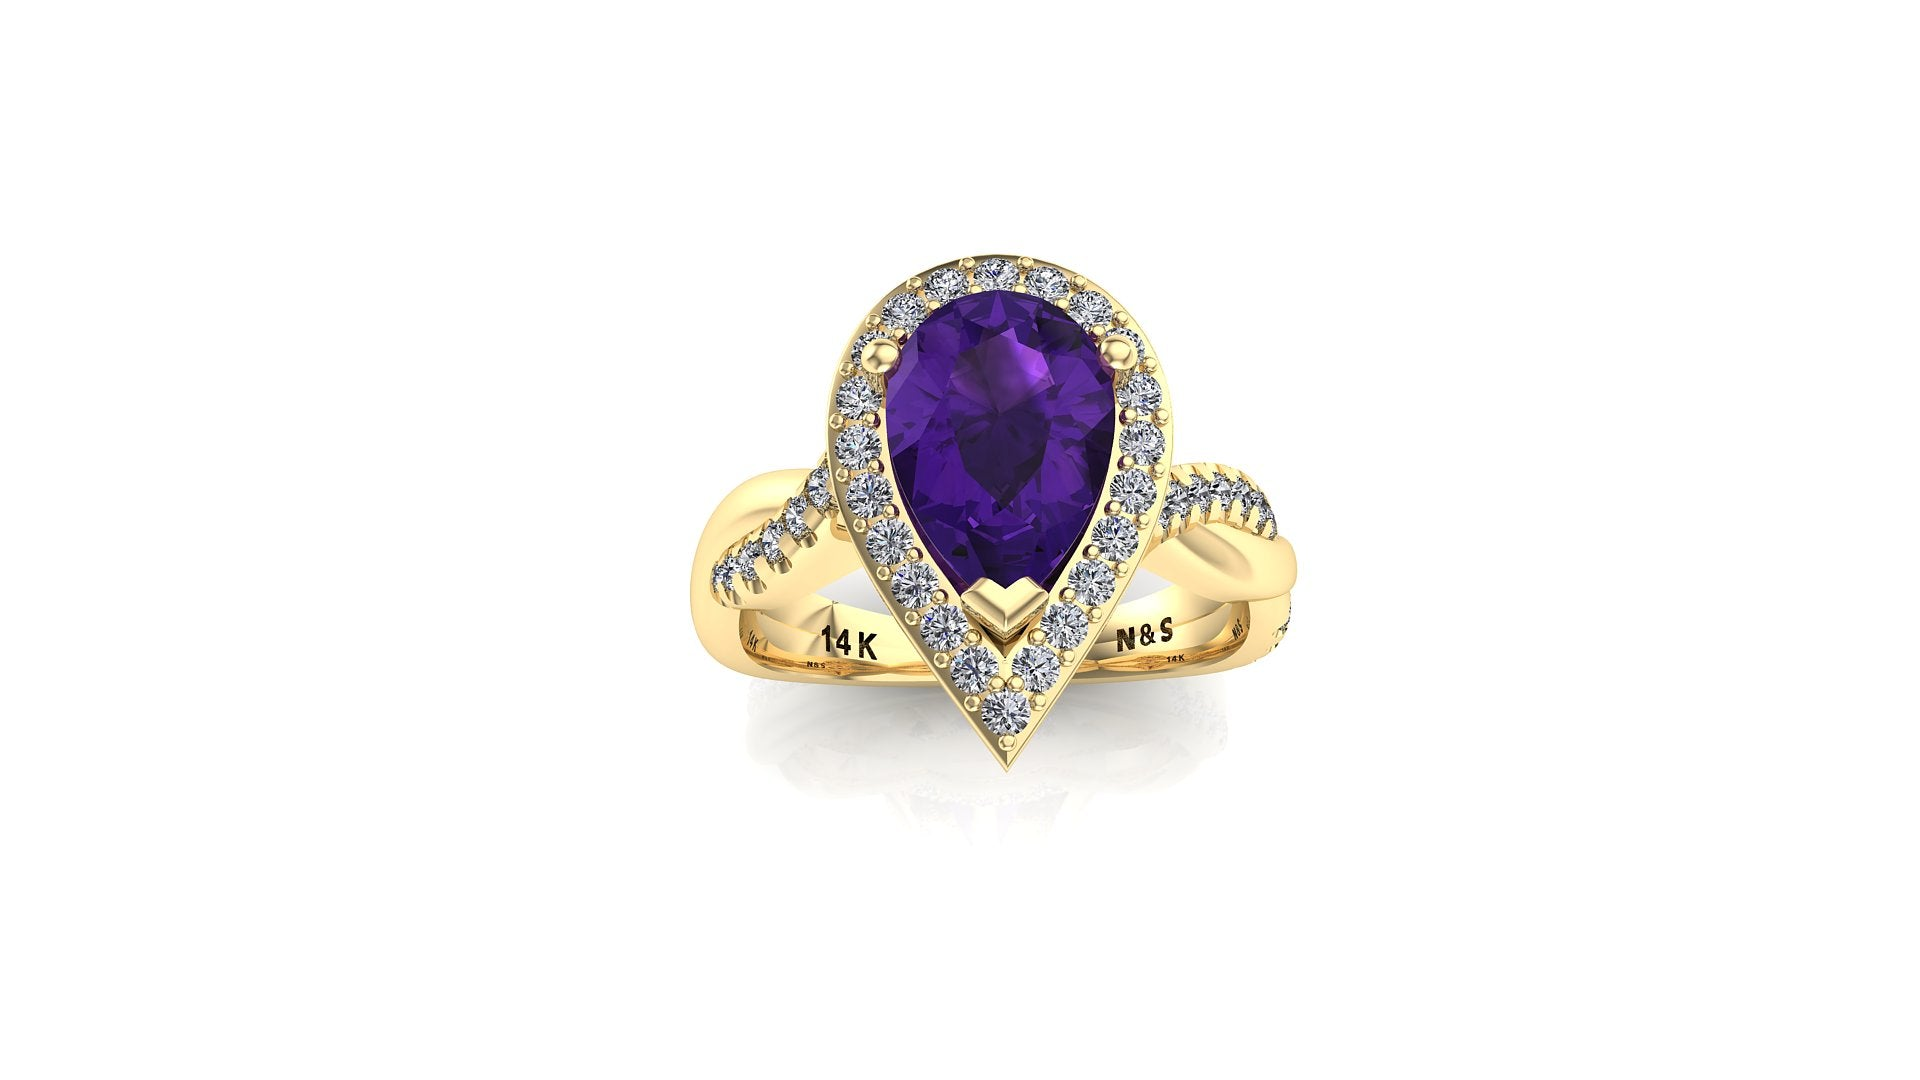 9x6mm (1.30ct) Single Diamond Twist Pear Cut Amethyst Diamond Halo 14K Gold Ring BSAQ010